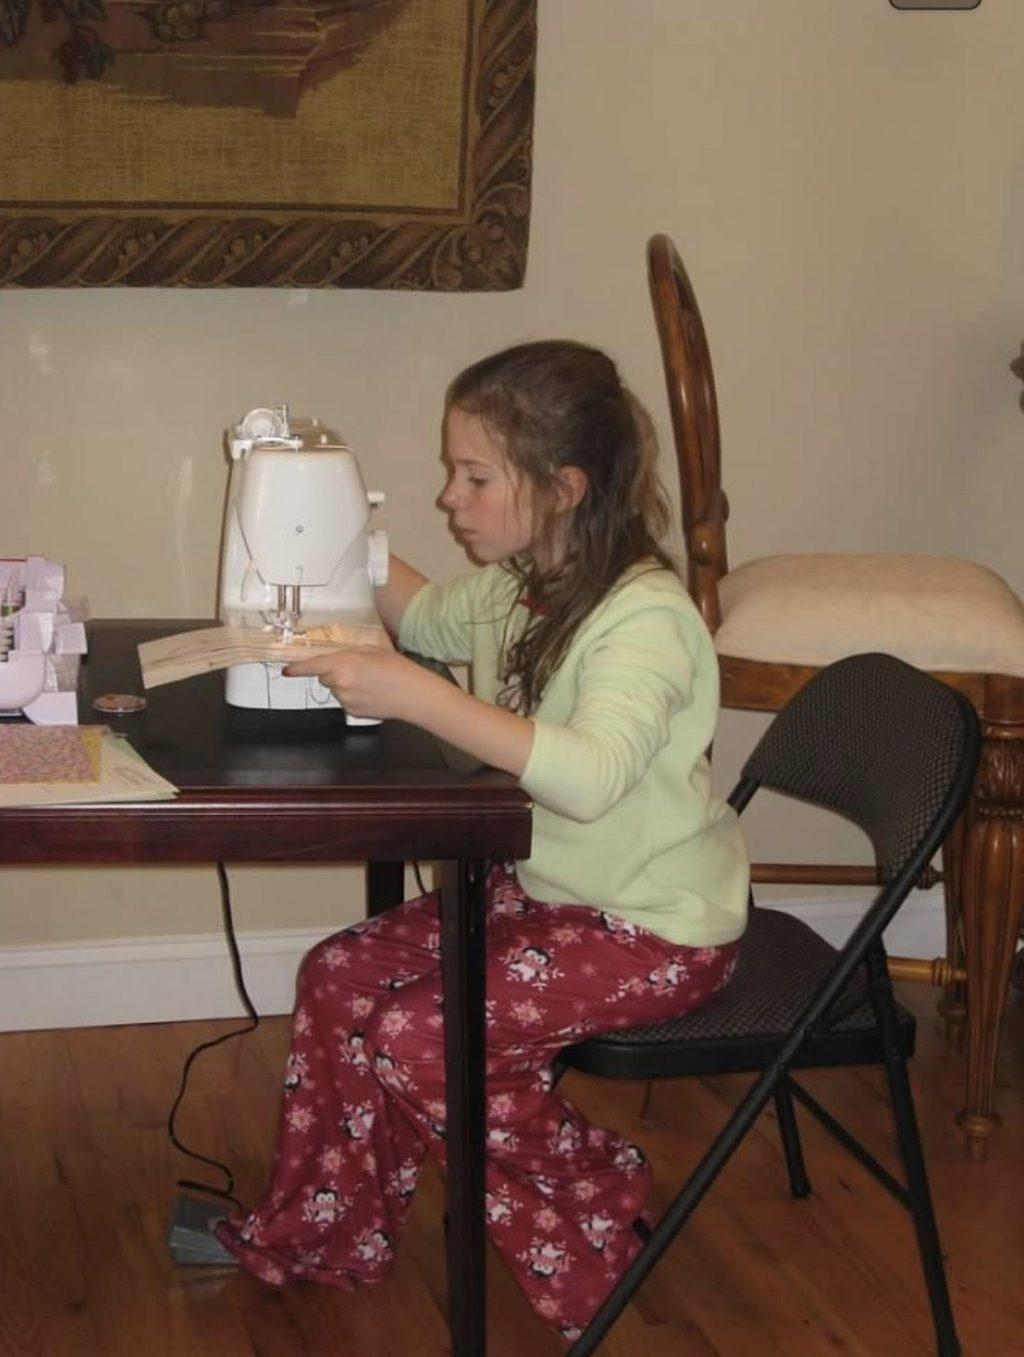 Murphy sits at a table with her first sewing machine, which she got when she was a child. She has been sewing for at least 10 years.